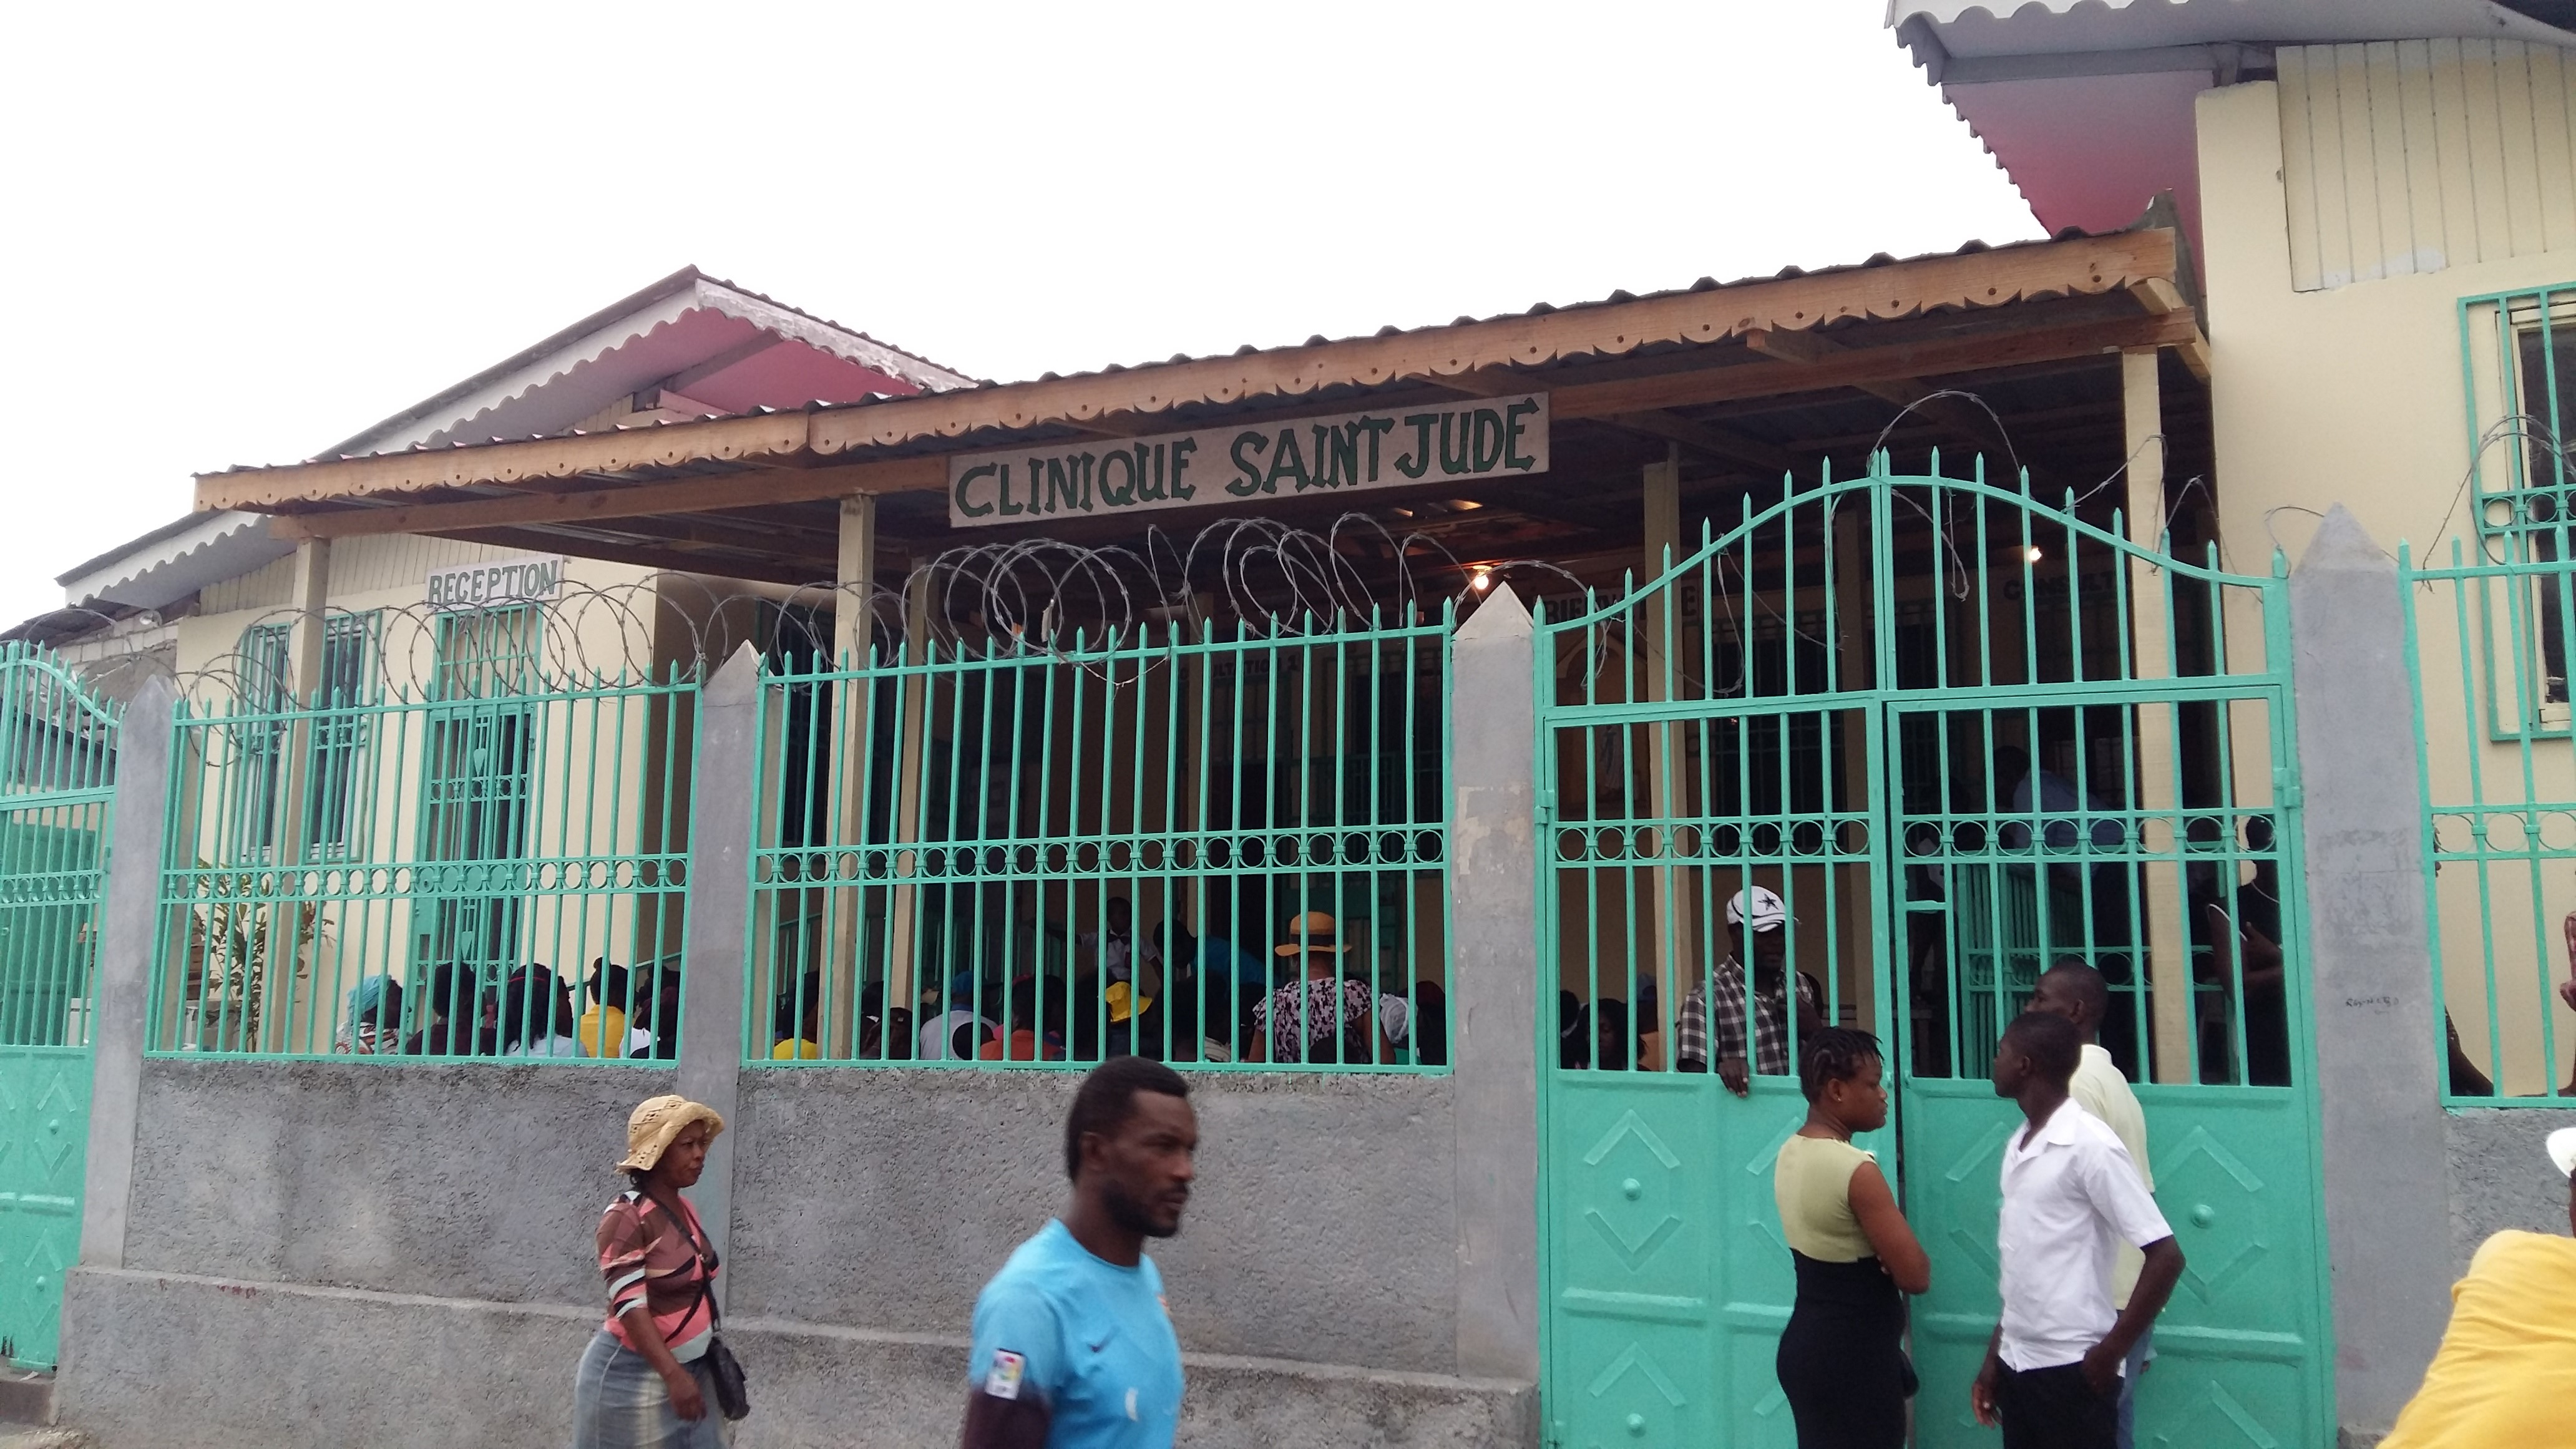 An Education Program Run by Fr. Anaclet and the Saint Jude Clinic Could Address Infant Mortality